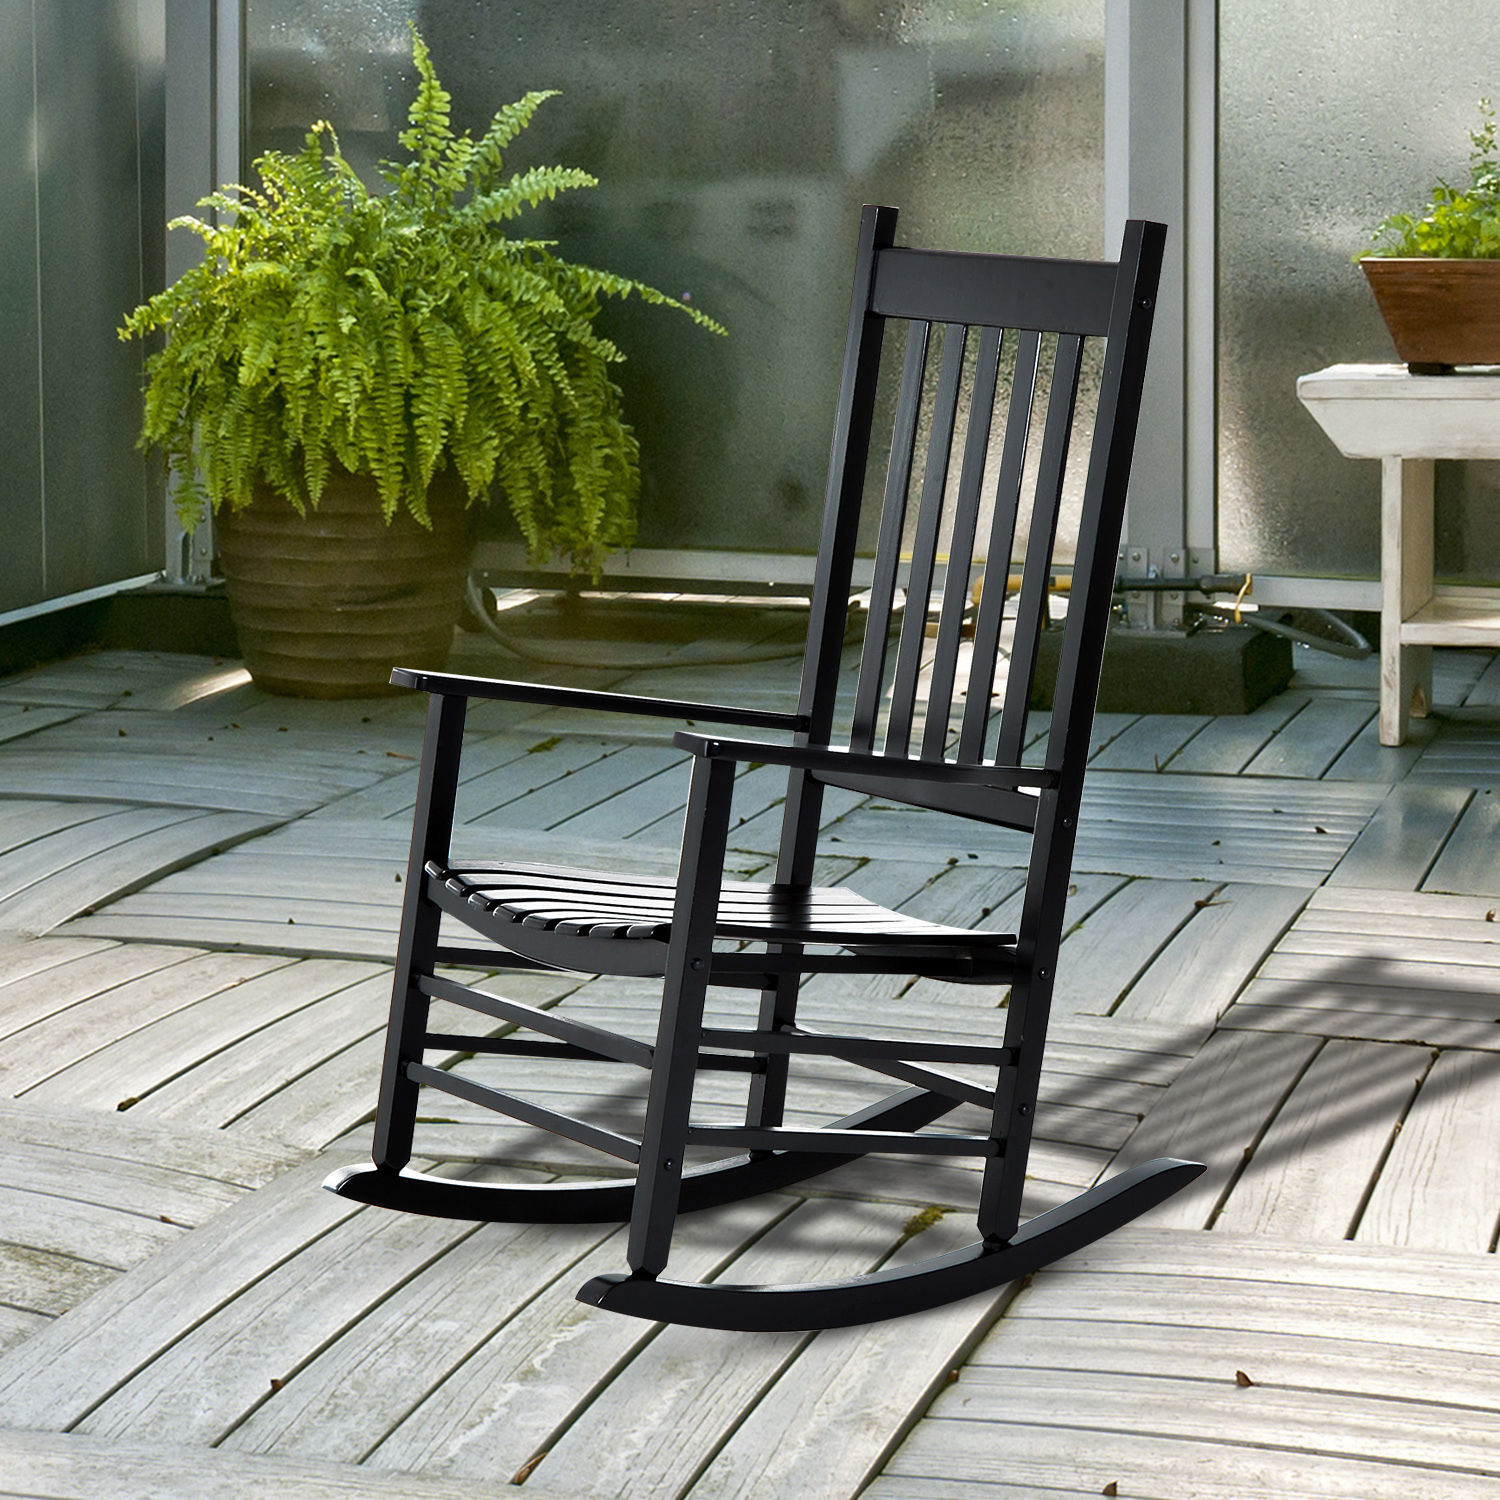 Picture of: Porch Rocking Chair Outdoor Patio Wooden Rocking Chair Black 712190178215 Ebay